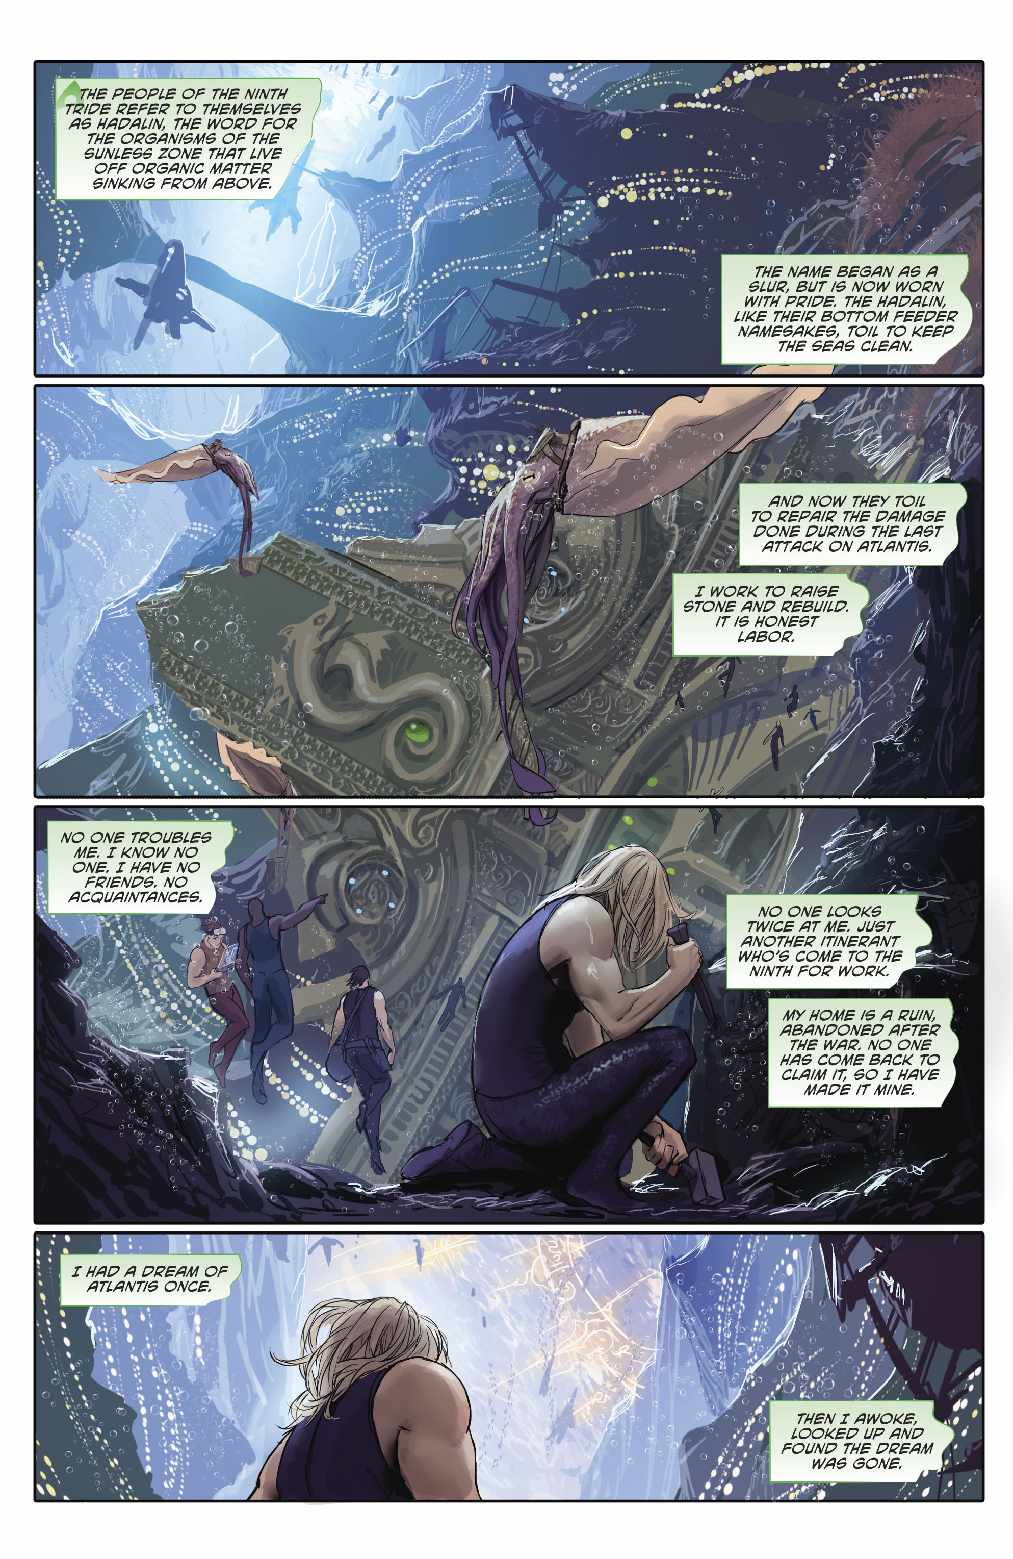 Read Comics Online Free - Superman (2016) - Chapter 025 - Page 31